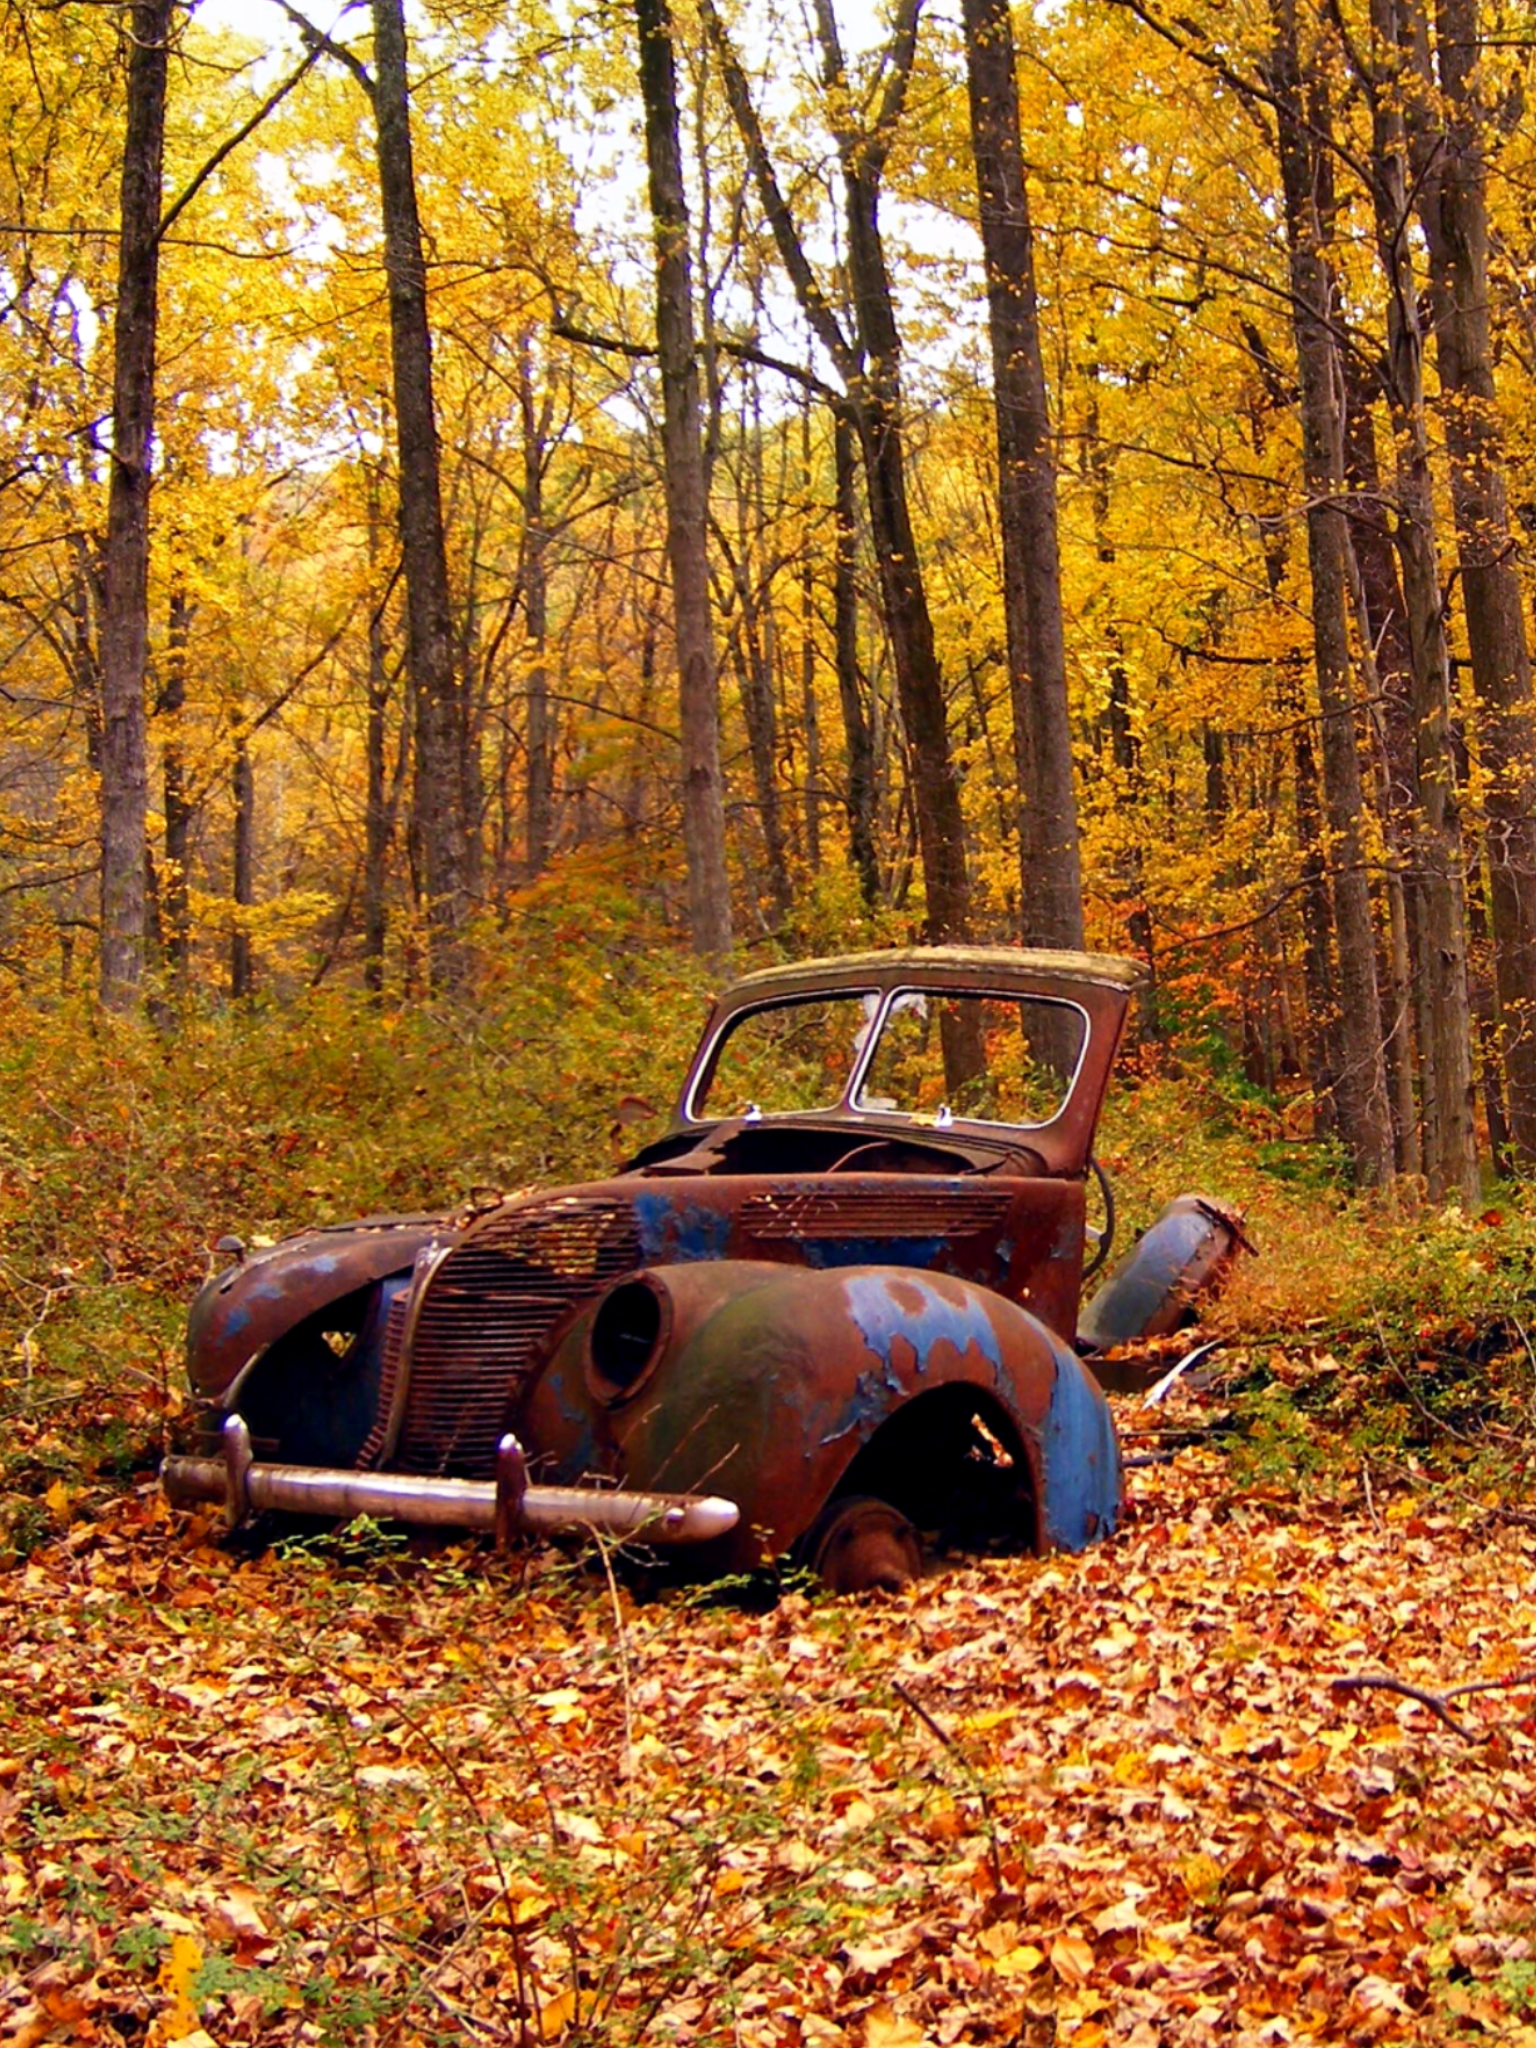 Rusty Cars In The Woods Source Facebook Com Beautiful Vintage